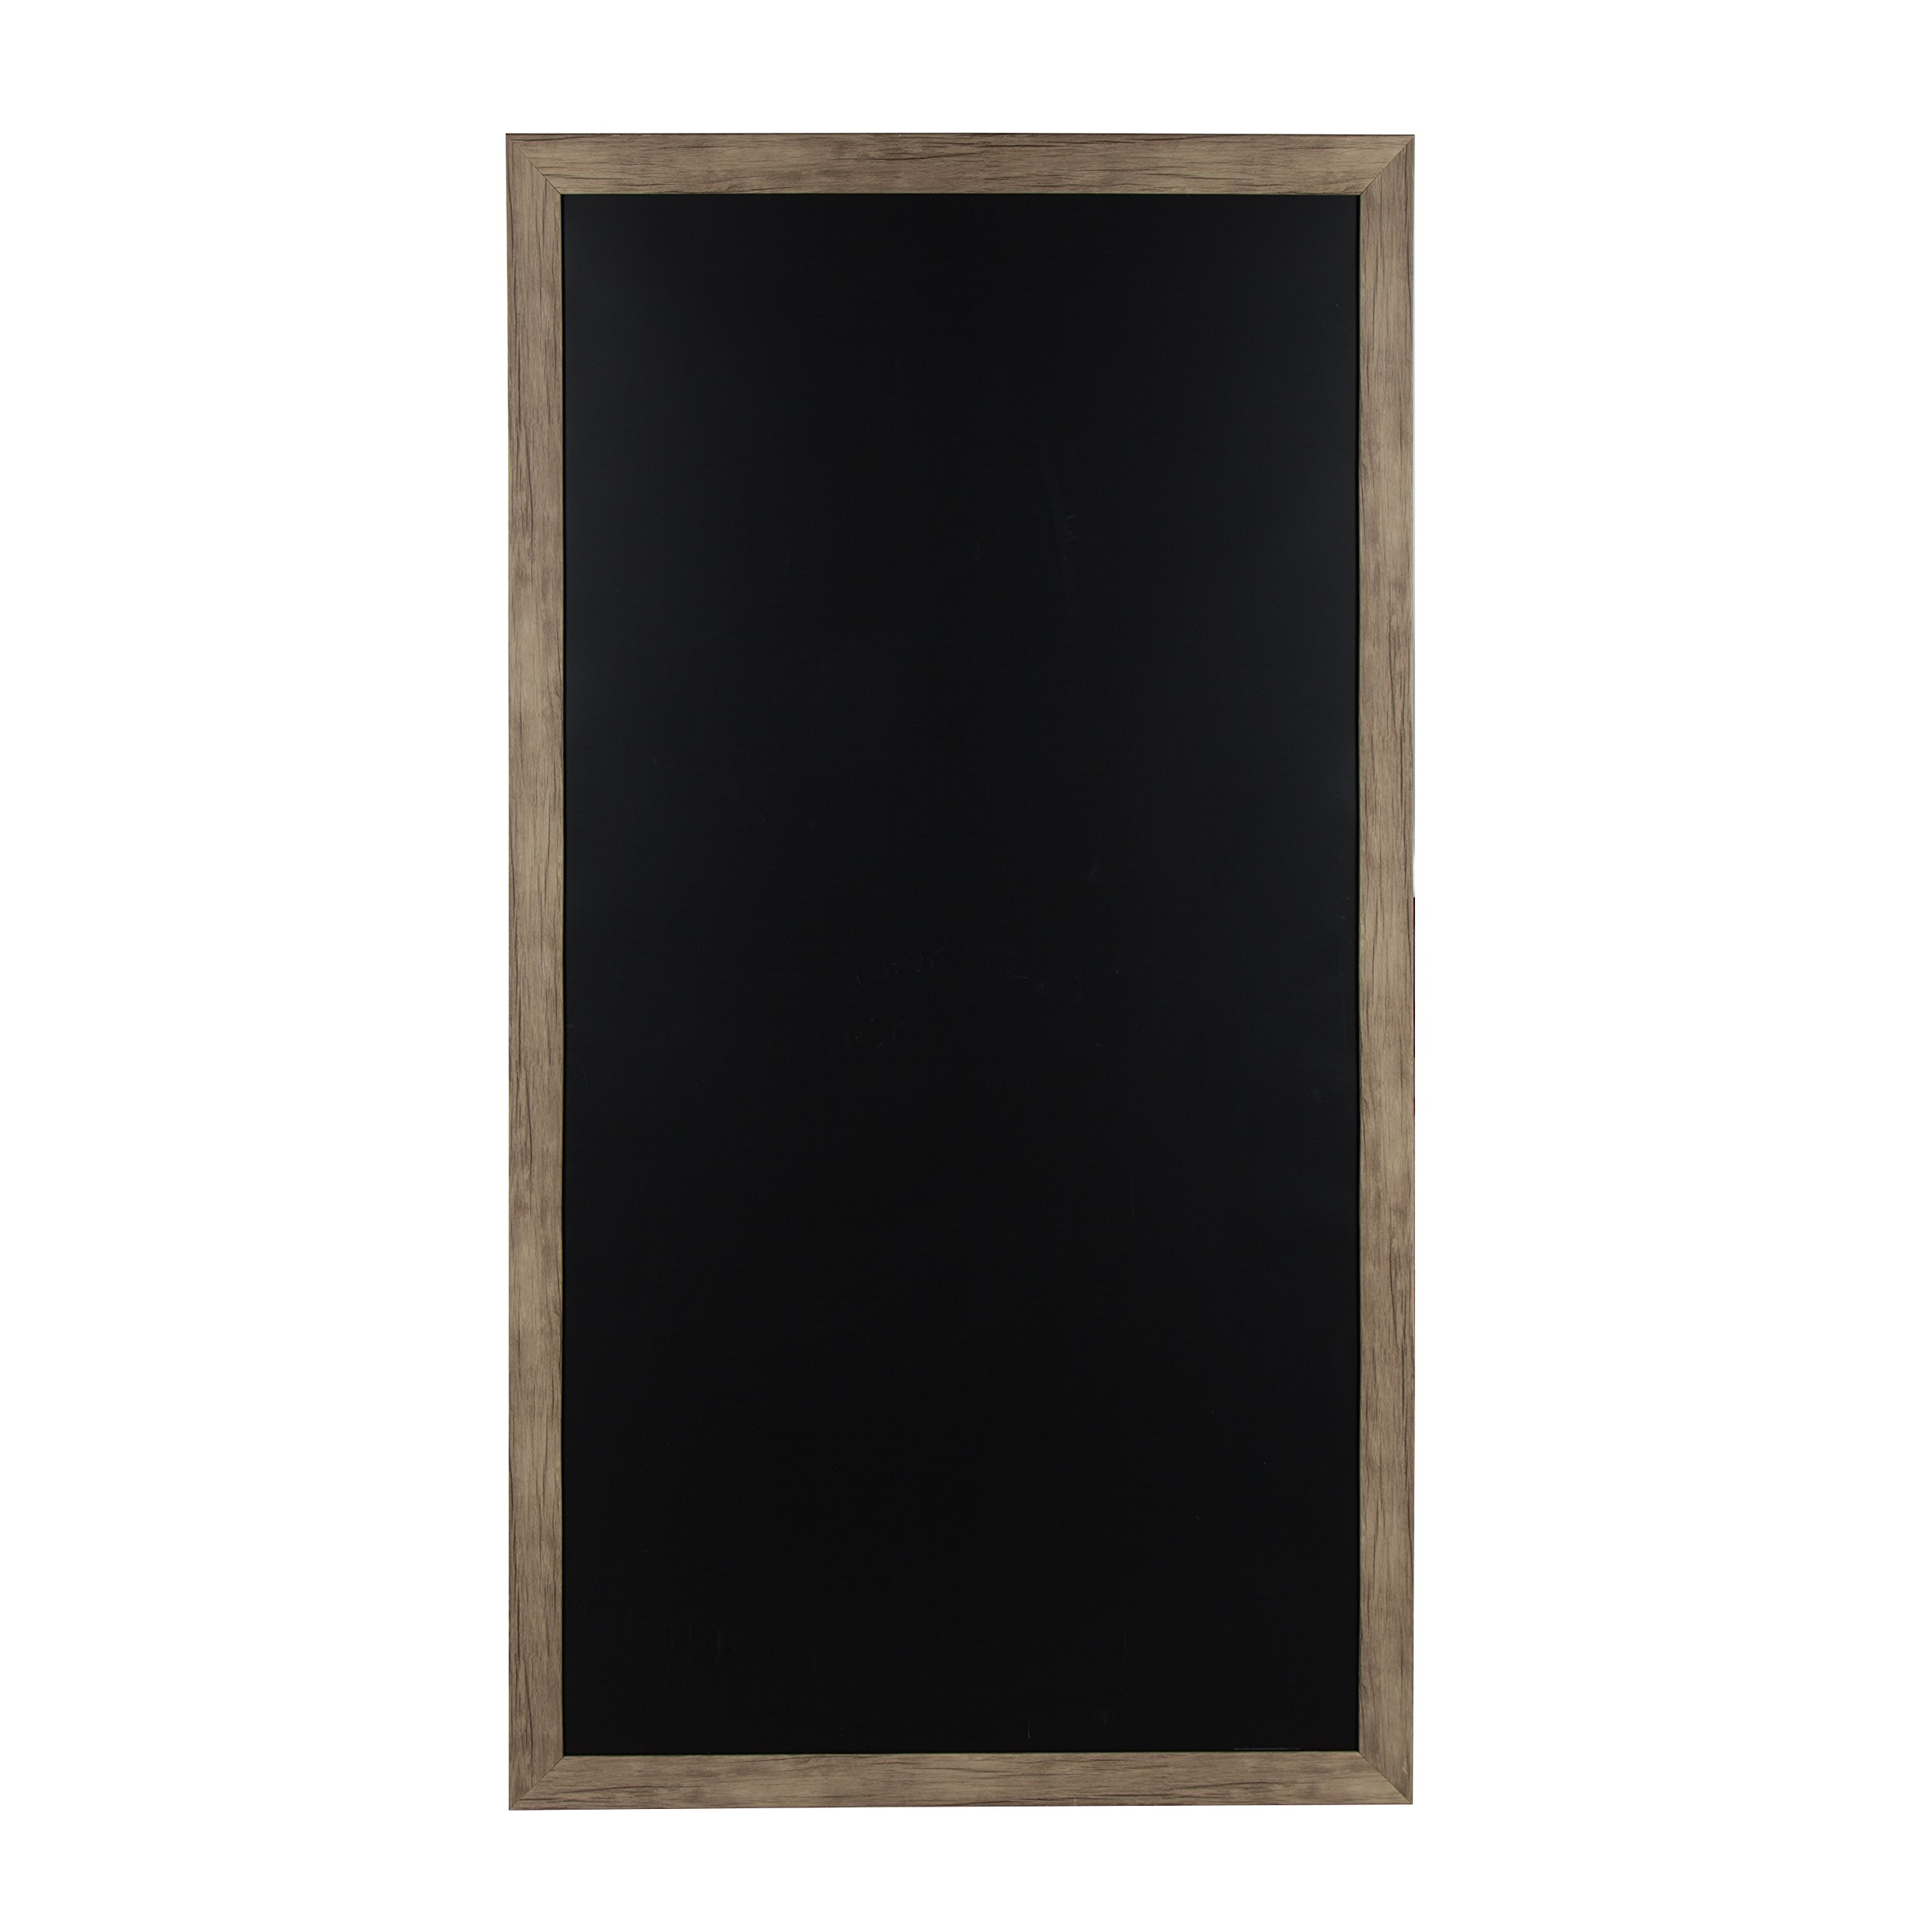 DesignOvation 209307 Beatrice Wall Mounted Oversized Framed Magnetic Chalkboard, Brown by DesignOvation